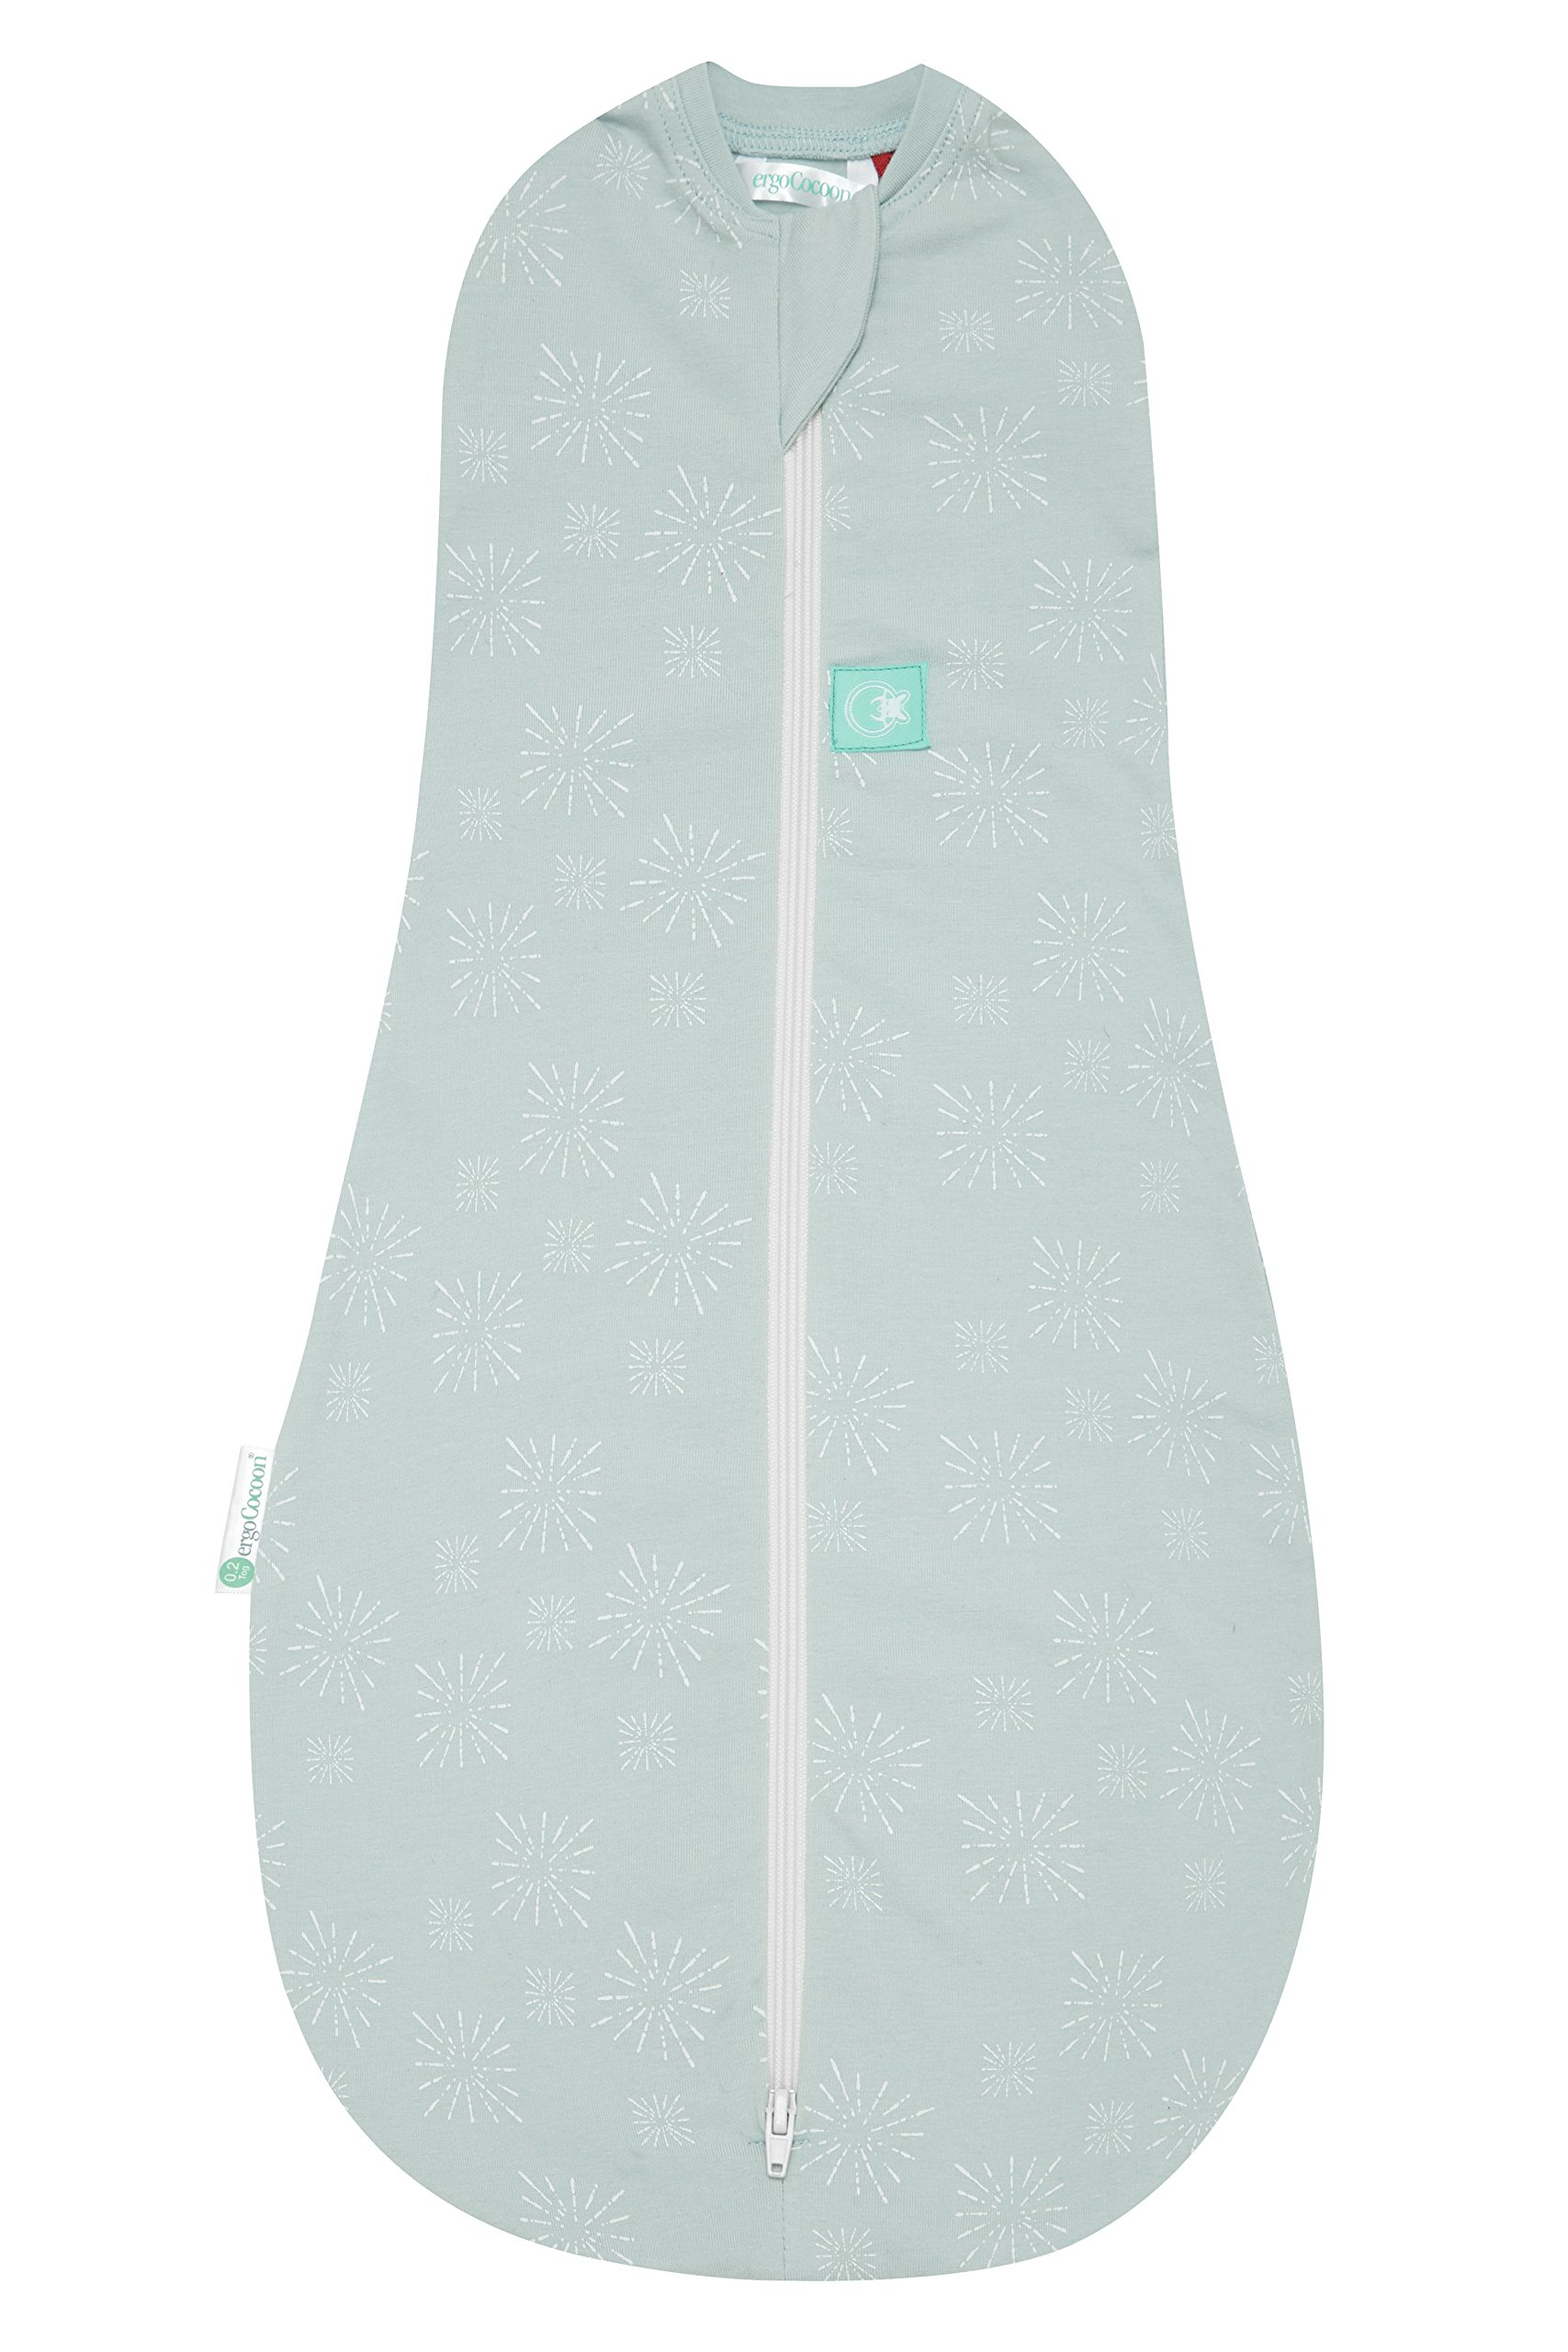 ergoPouch 1 tog Cocoon Swaddle Bag- 2 in 1 Swaddle Transitions into arms Free Wearable Blanket Sleeping Bag. 2 Way Zipper for Easy Diaper Changes